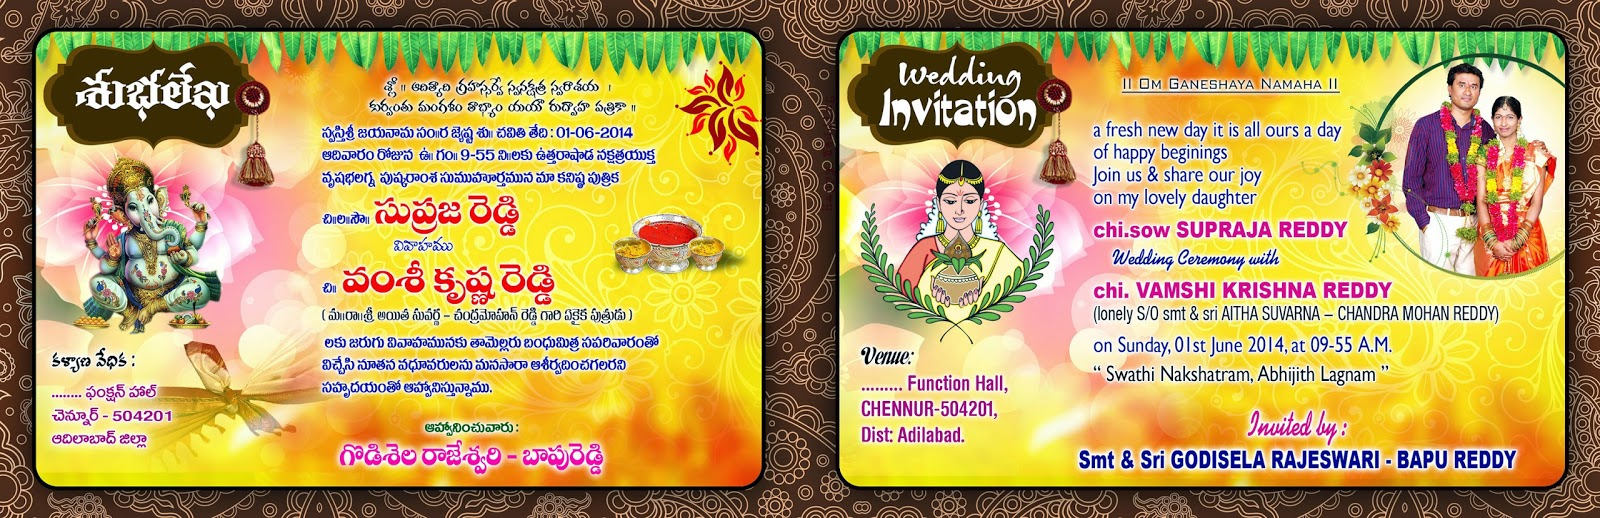 wedding invitation card psd design template free download | naveengfx